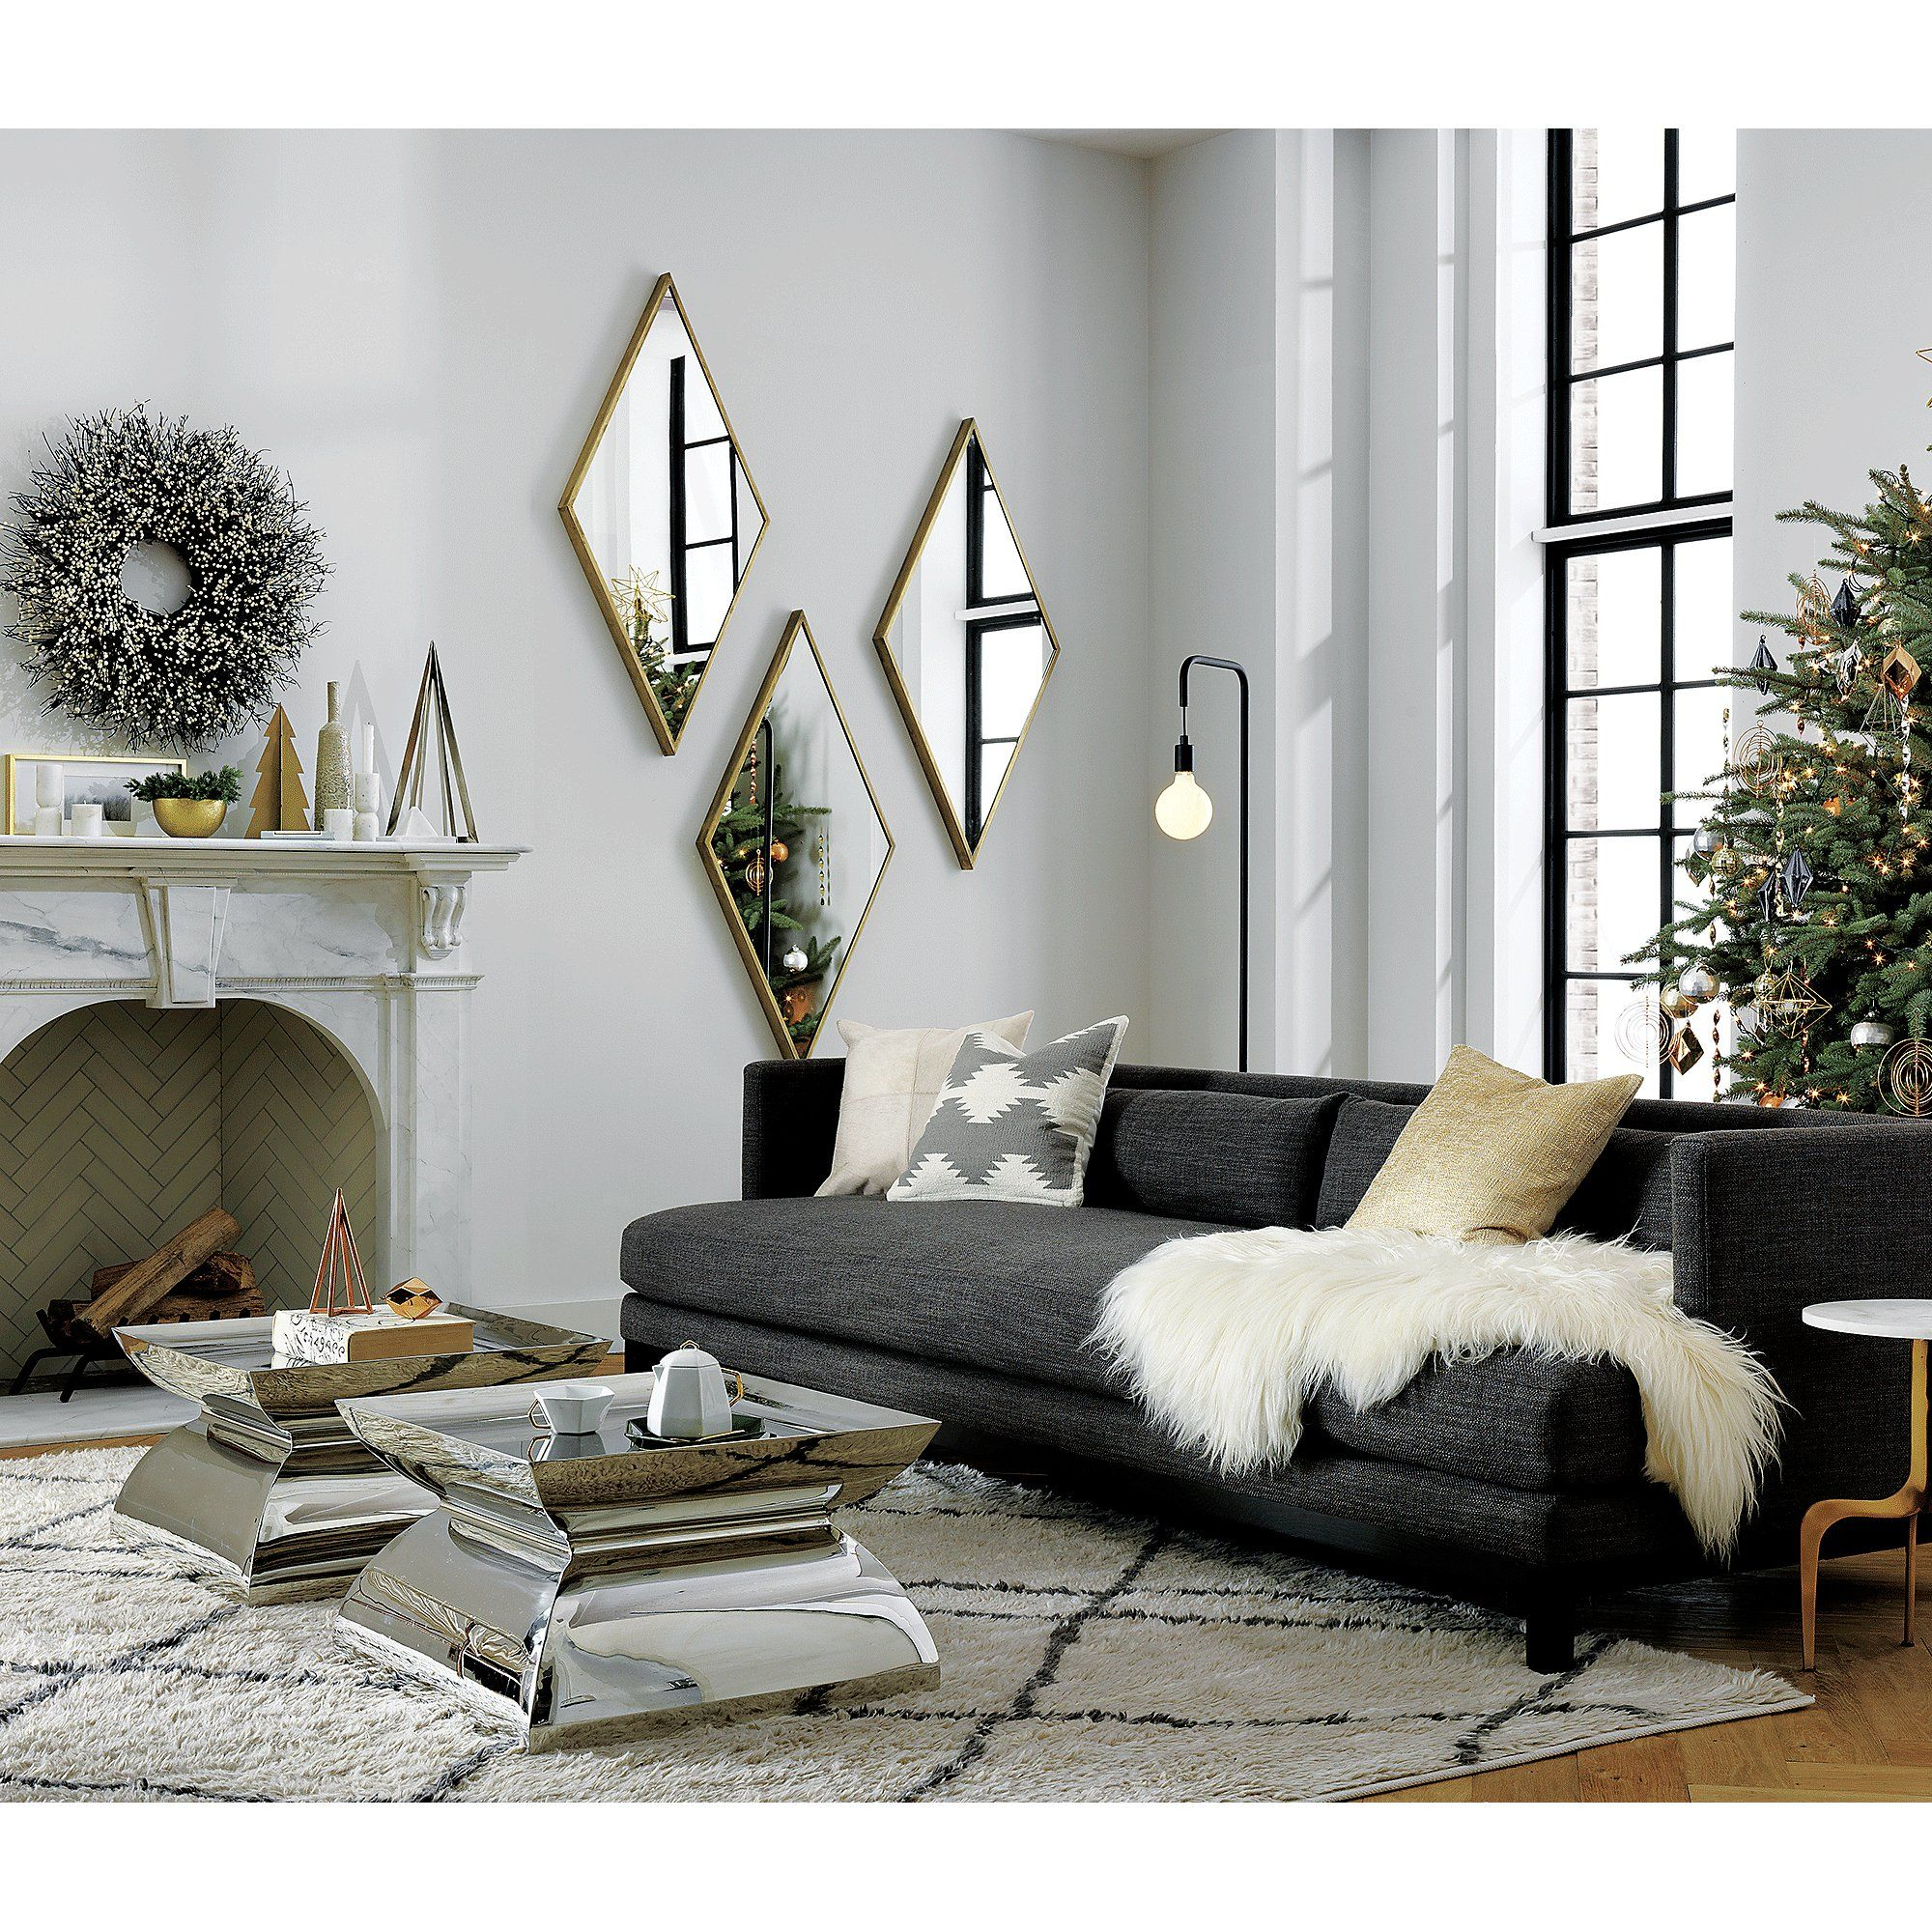 Shop Diamond Brass 21 75 Quot X45 Quot Wall Mirror Four Sided Looking Glass Reflects A Beauti Mirror Wall Living Room Mirror Wall Bedroom Living Room Sofa #wall #mirror #living #room #decor